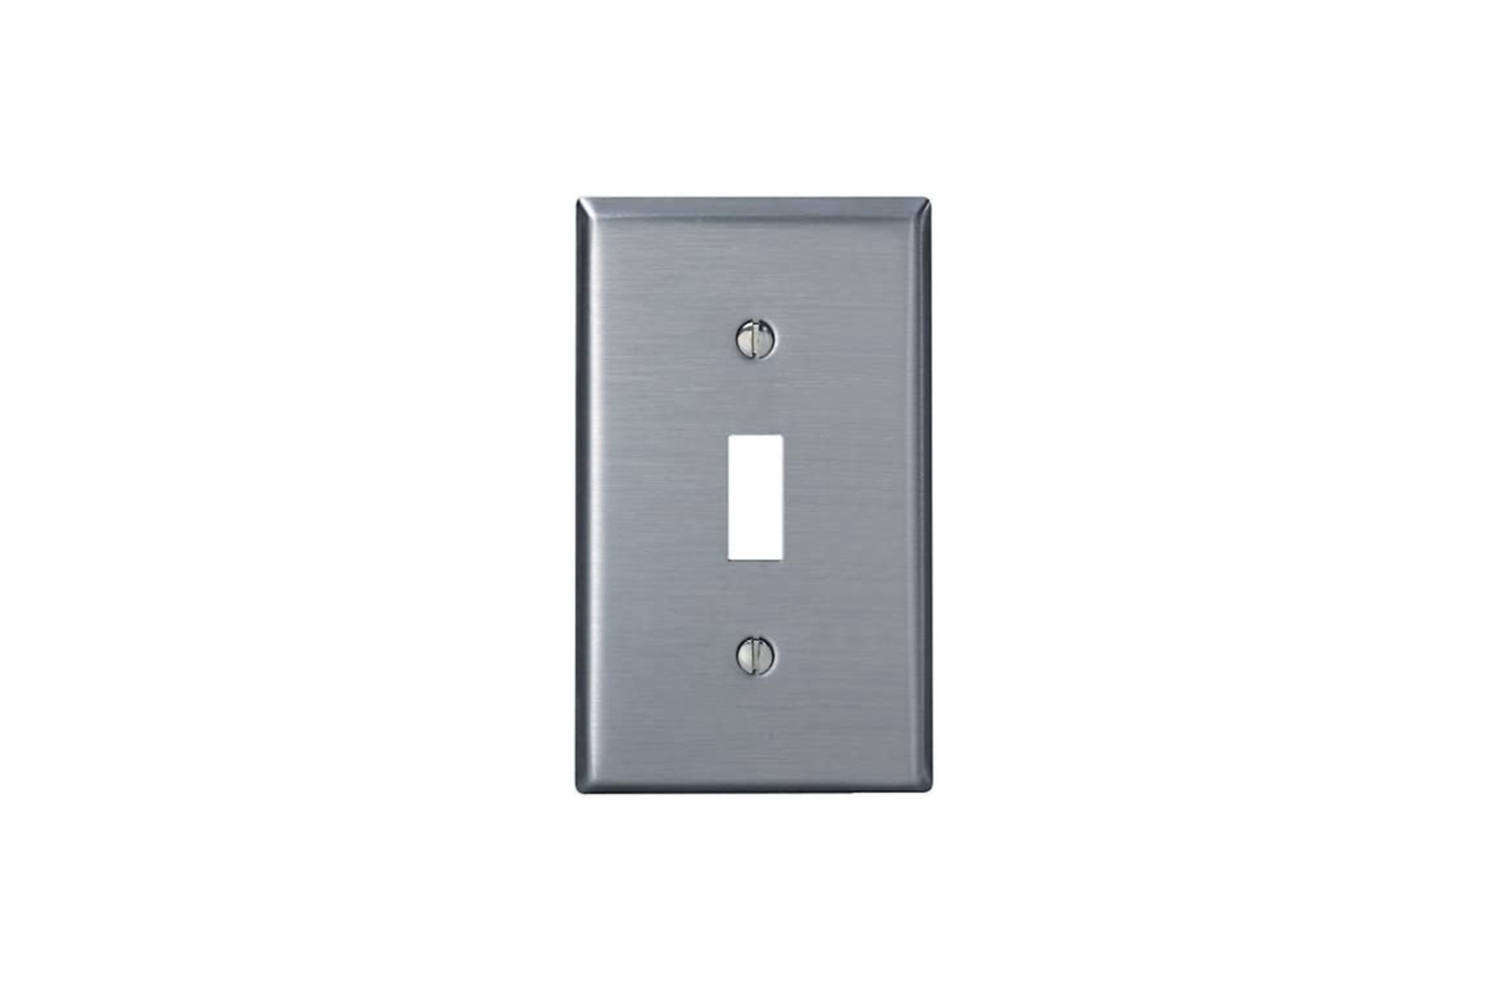 An affordable favorite among architects and designers, the Leviton Gang Toggle Device Switch Wallplate is $3. on Amazon.